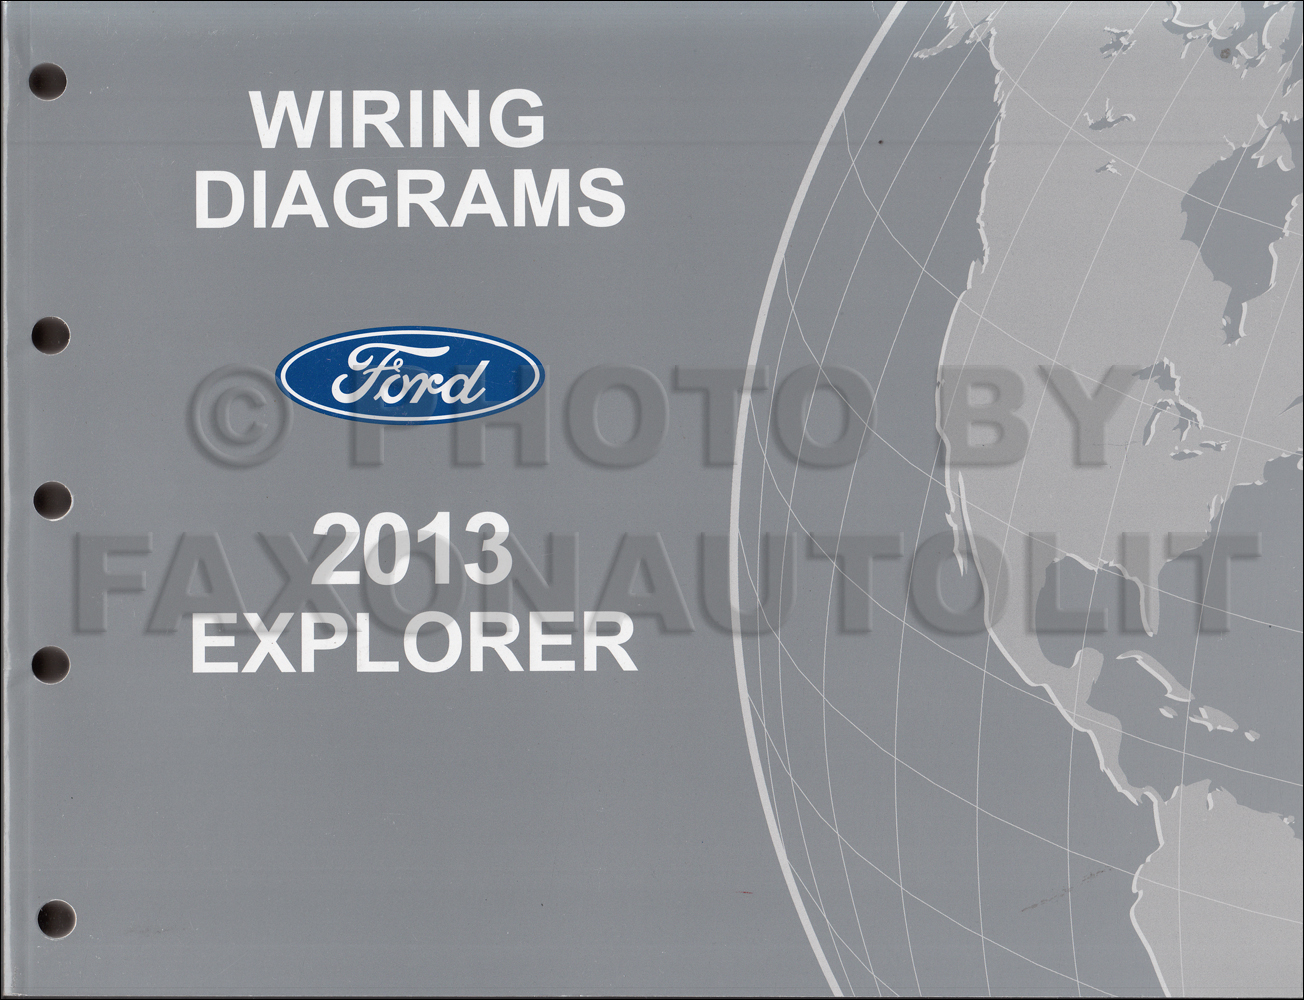 2013 ford explorer wiring diagrams 2015 ford explorer wiring diagrams 2013 ford explorer wiring diagram manual original